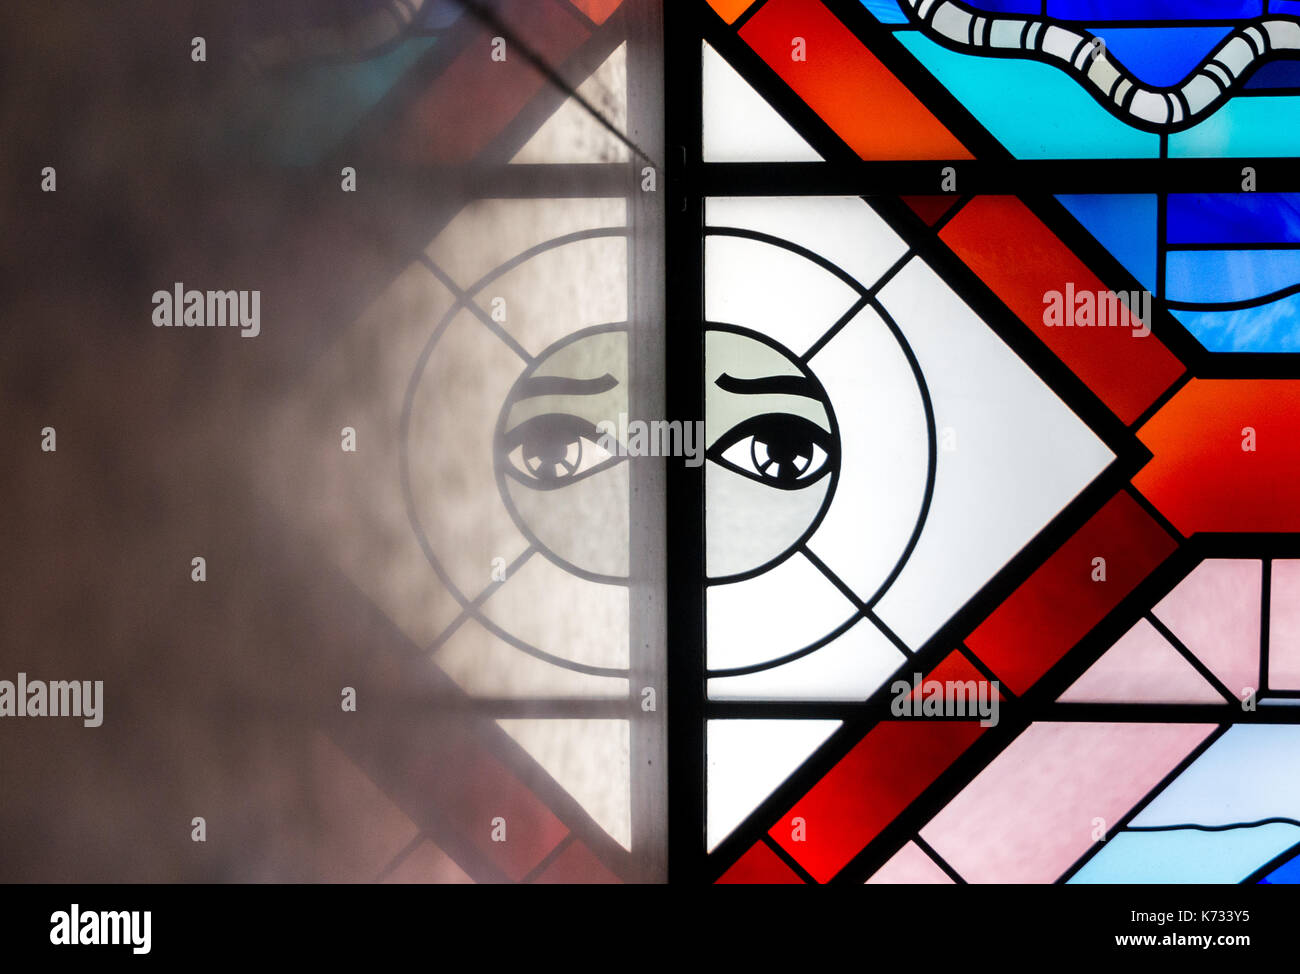 Remo Riva stained glass window inside the Standard Chartered Bank Building, Central, Hong Kong. Jayne Russell/Alamy Stock Photo - Stock Image